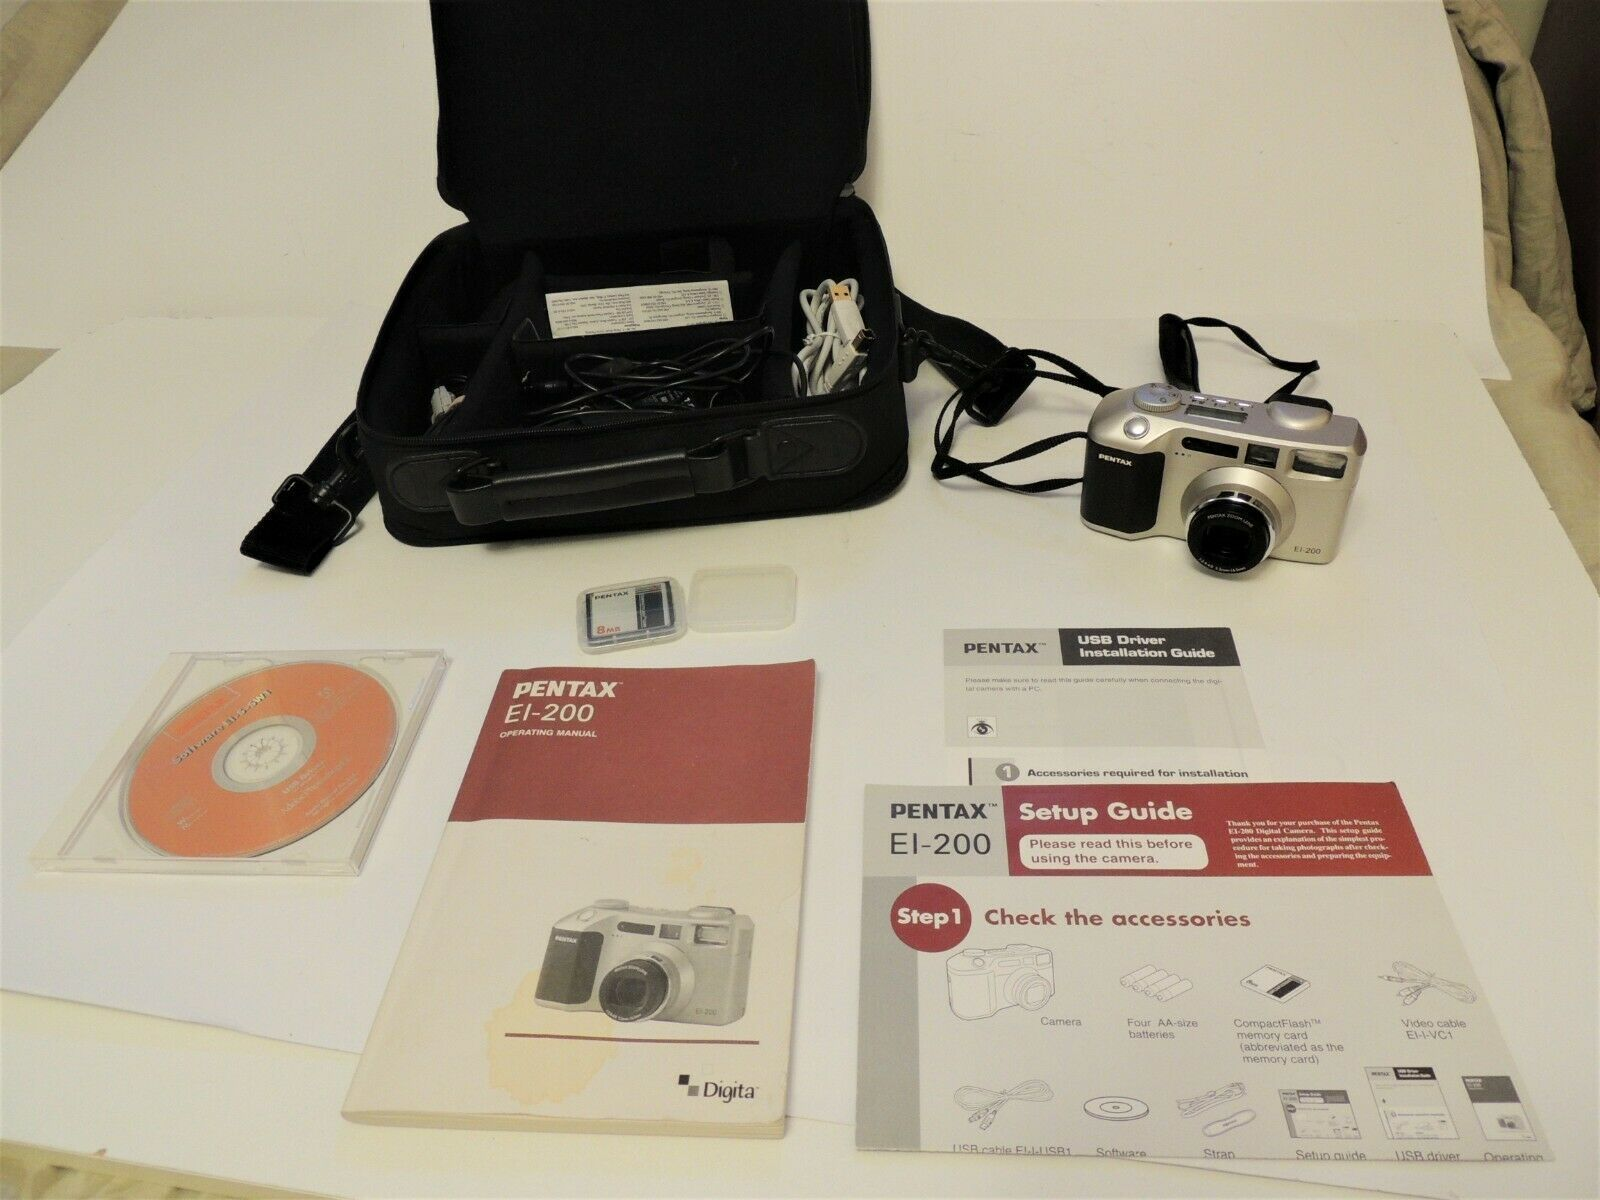 Primary image for Pentax EI-200 Digital Camera case, Mem cards, paperwork, charger, cables Nice!!